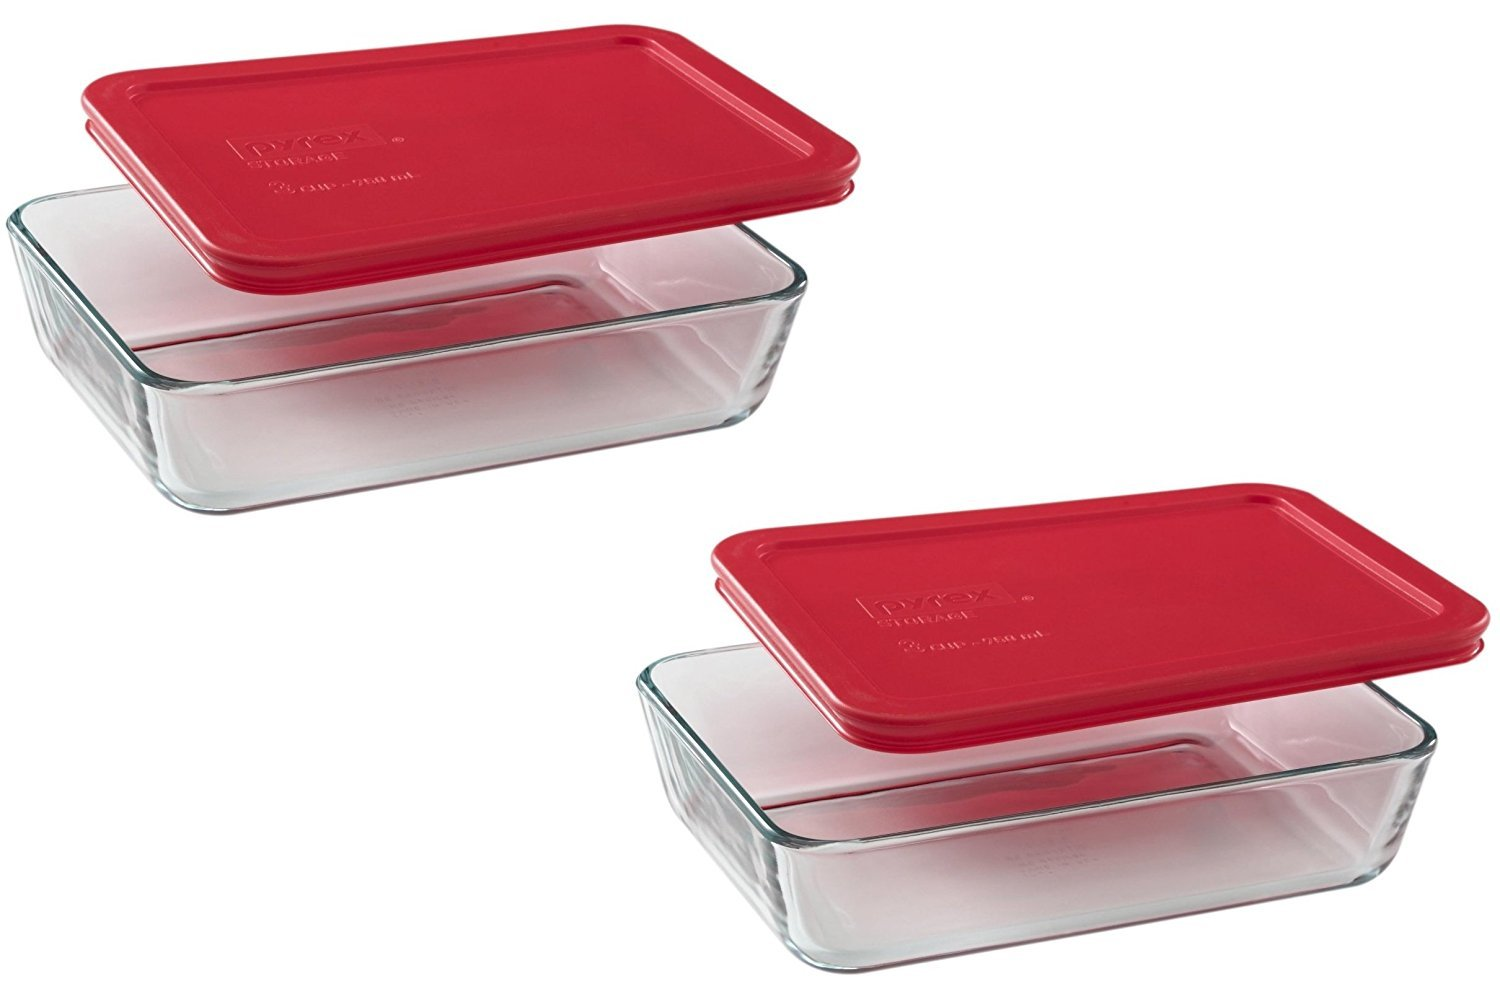 Pyrex 3-Cup Rectangle Food Storage, Pack of 2 Containers